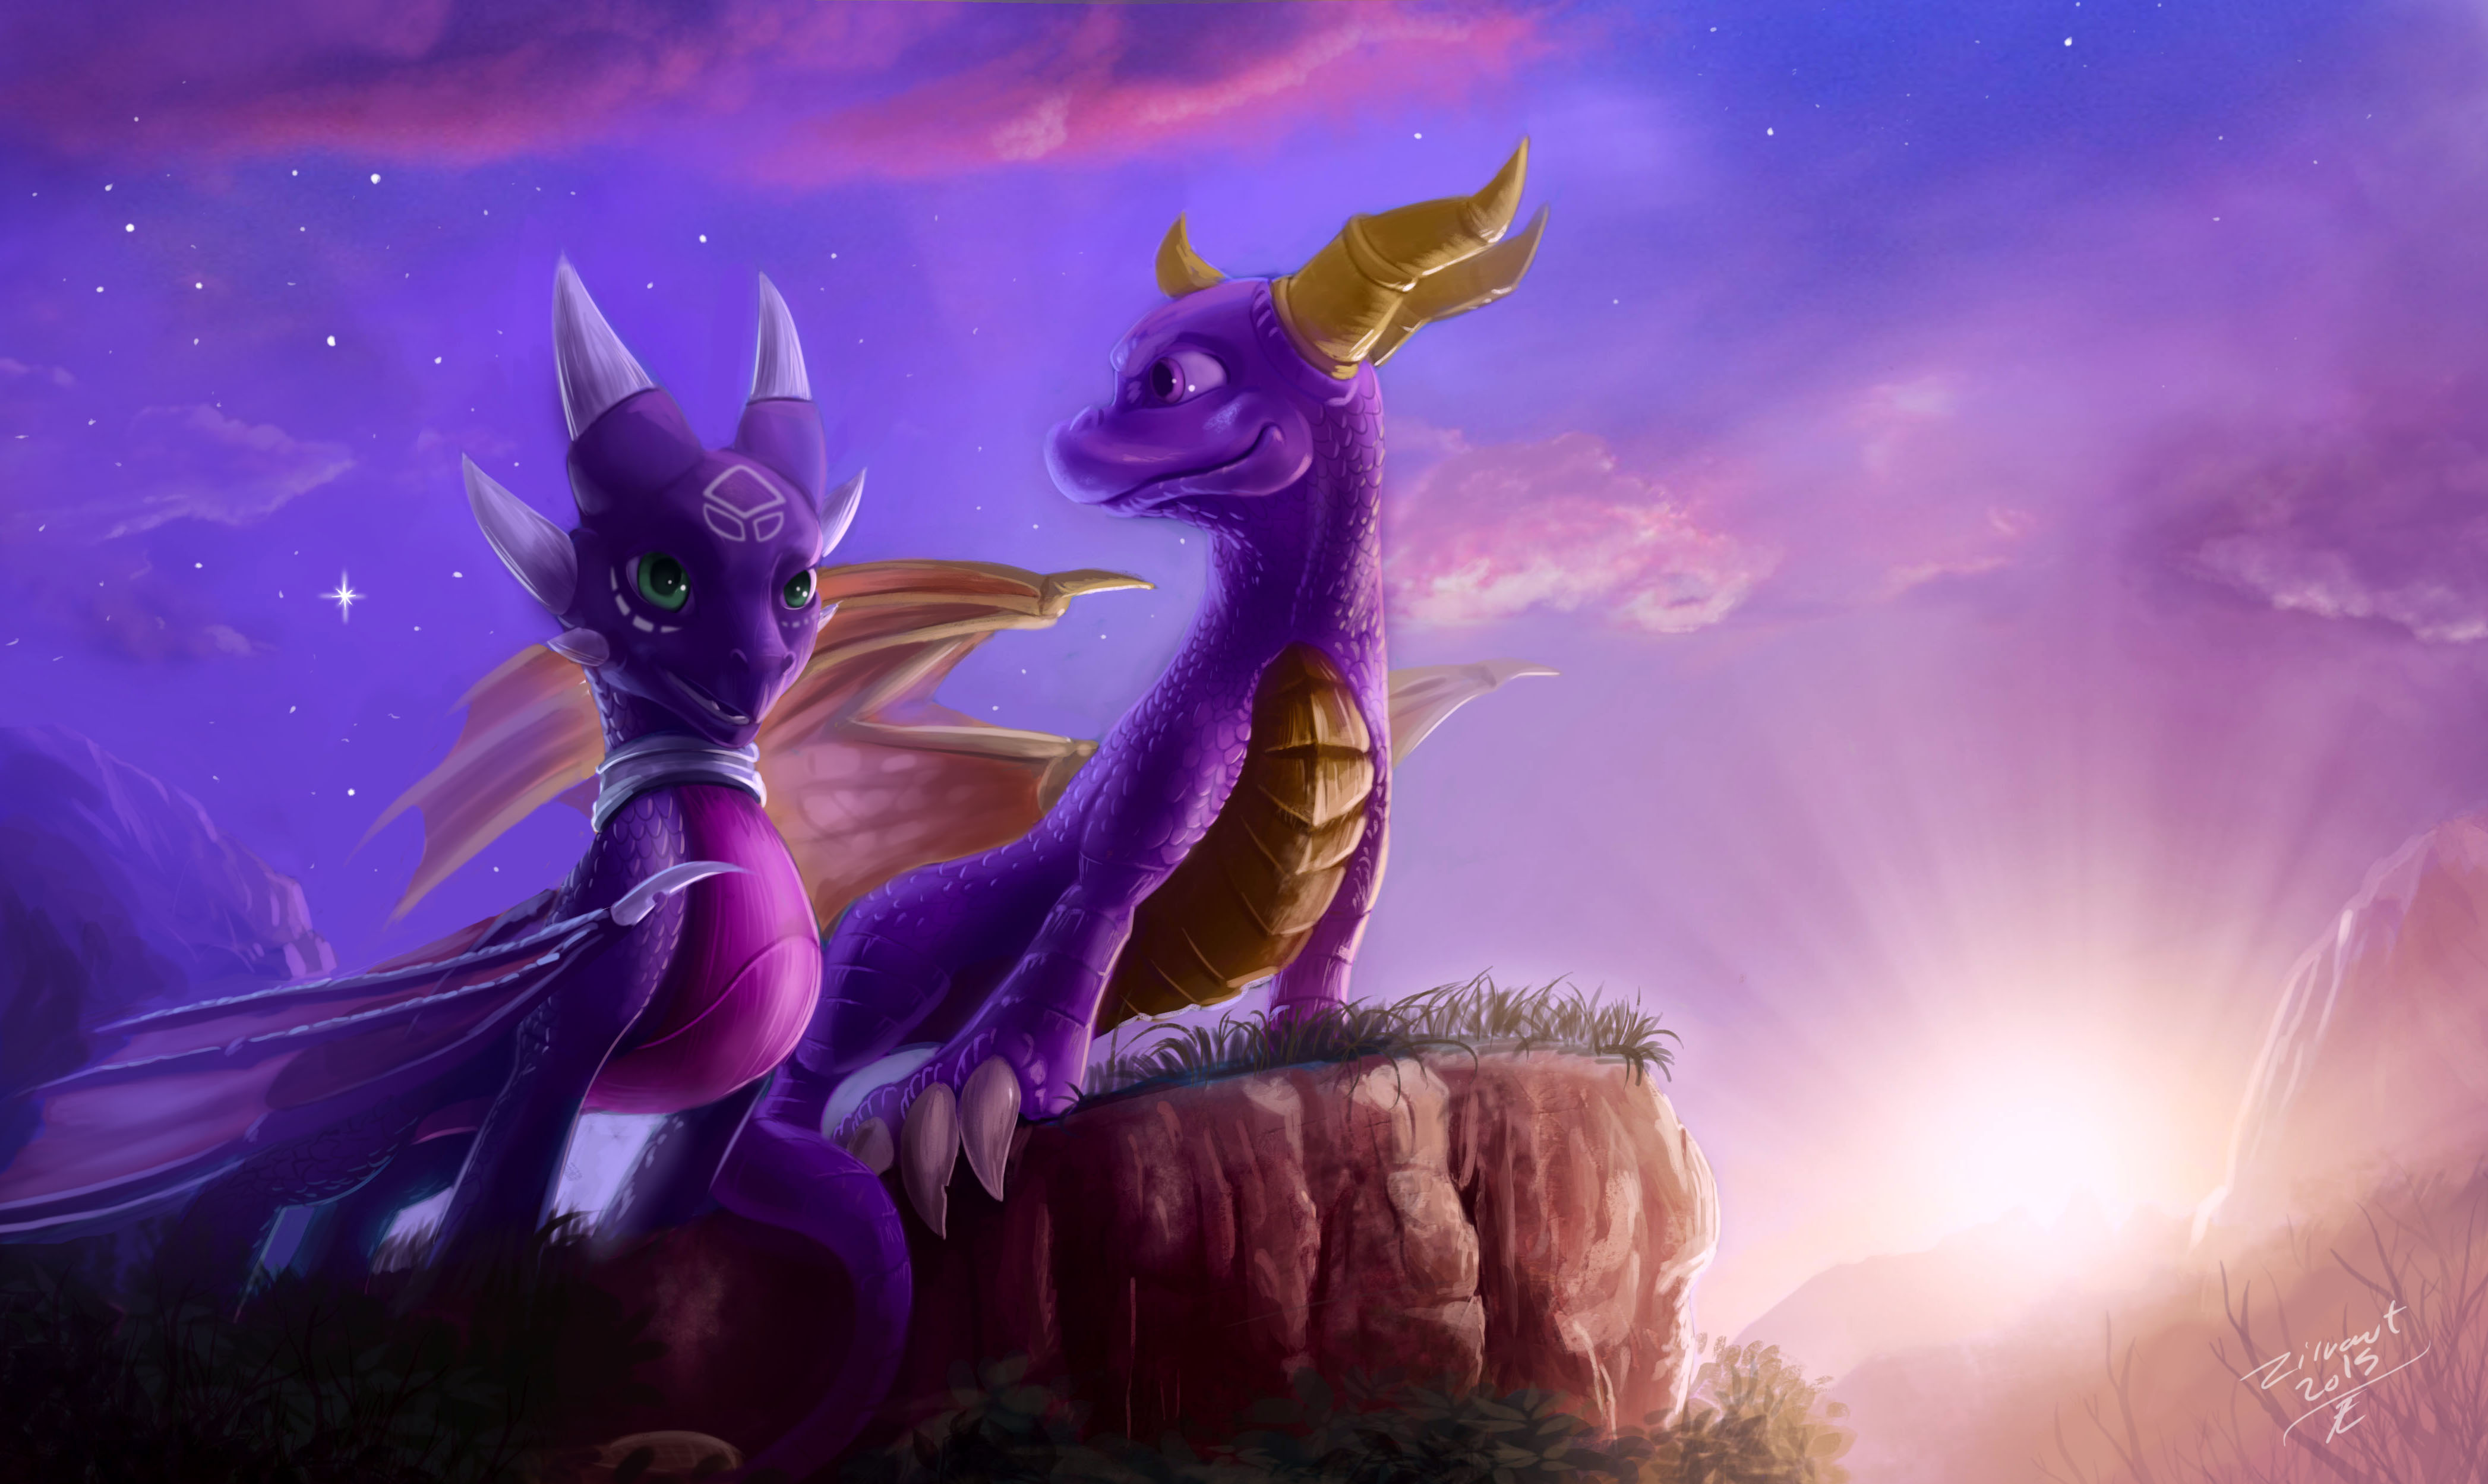 Spyro And Cynder 4k Ultra HD Wallpaper Background Image